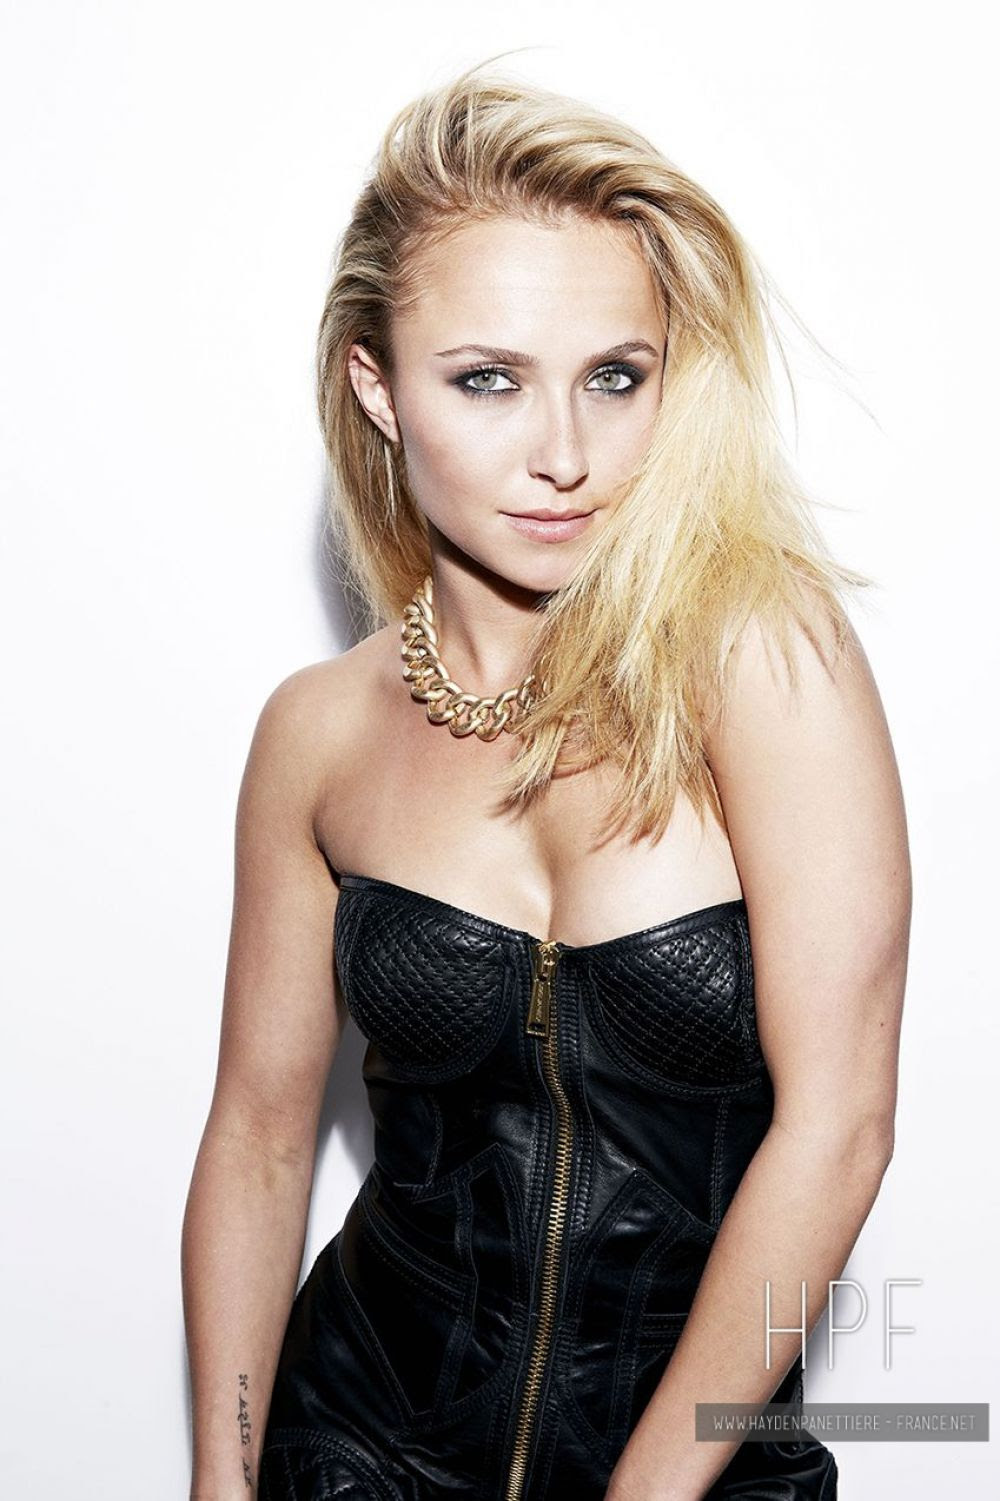 The Best from Past - HAYDEN PANETTIERE by Cliff Watts for Nylon Magazine. March 2013